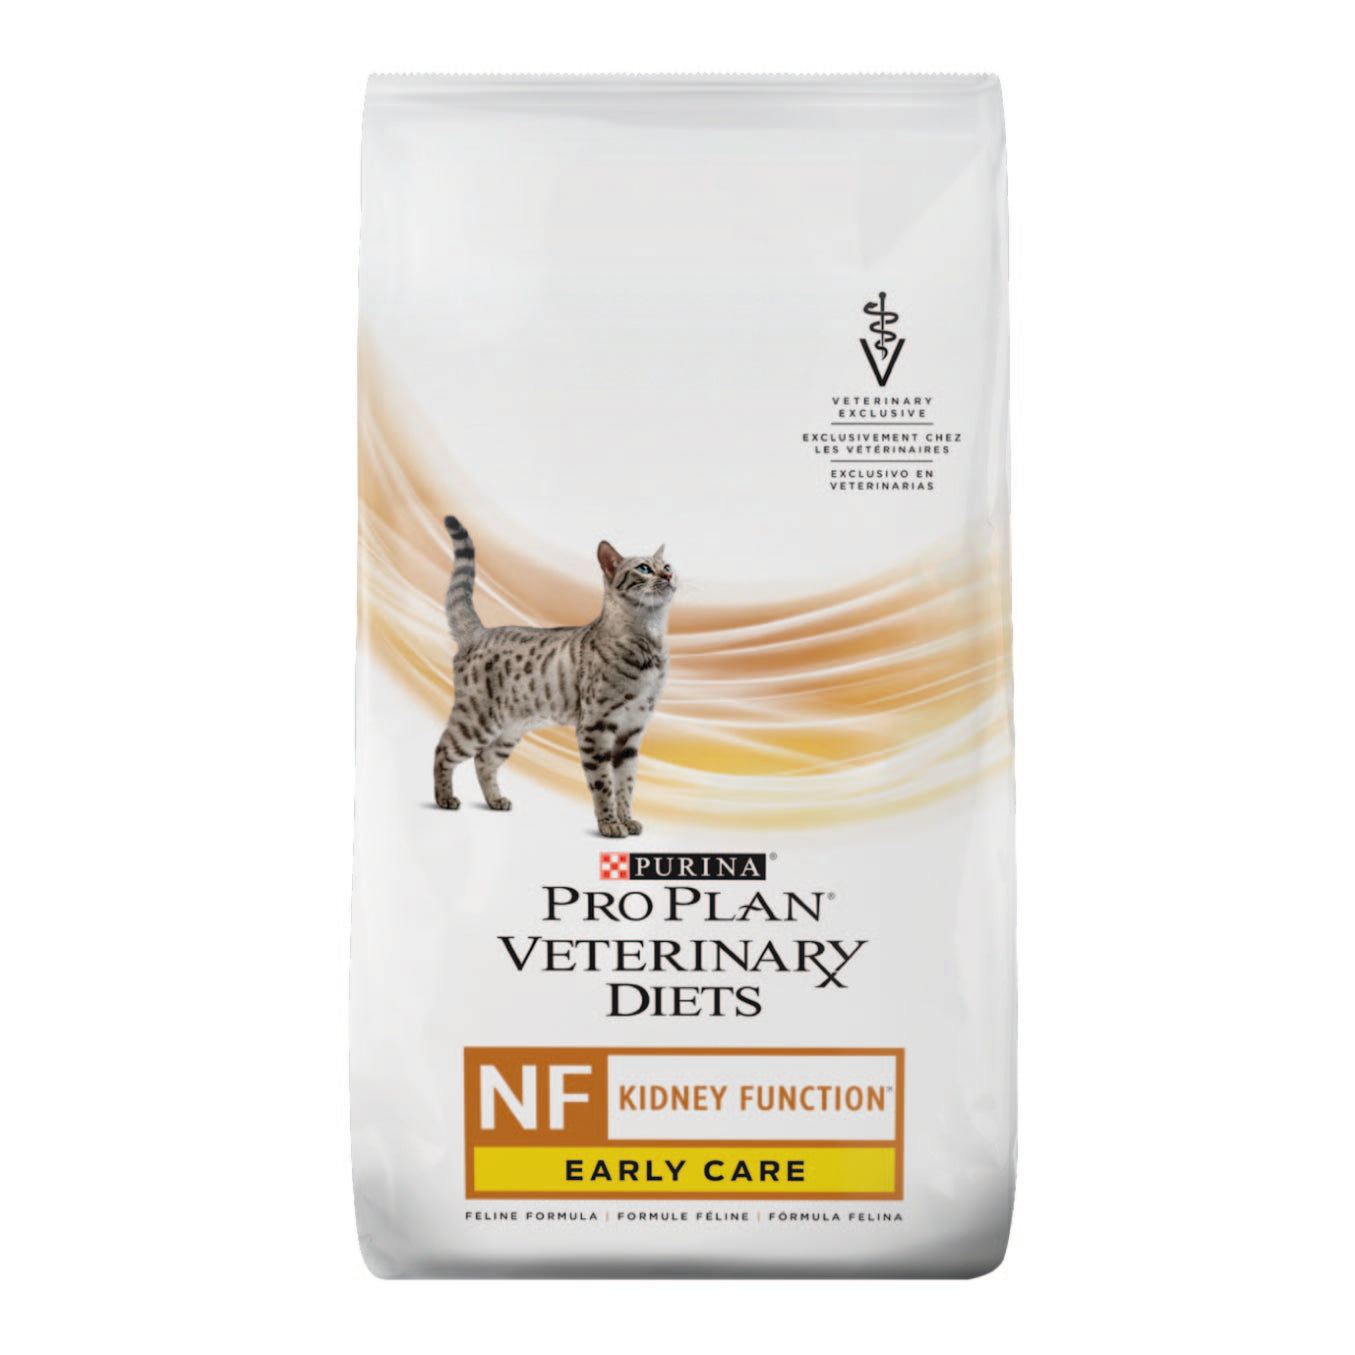 Alimento Gato Pro Plan NF Kidney Function Early Care 3.62 Kg - Veterinary Diets